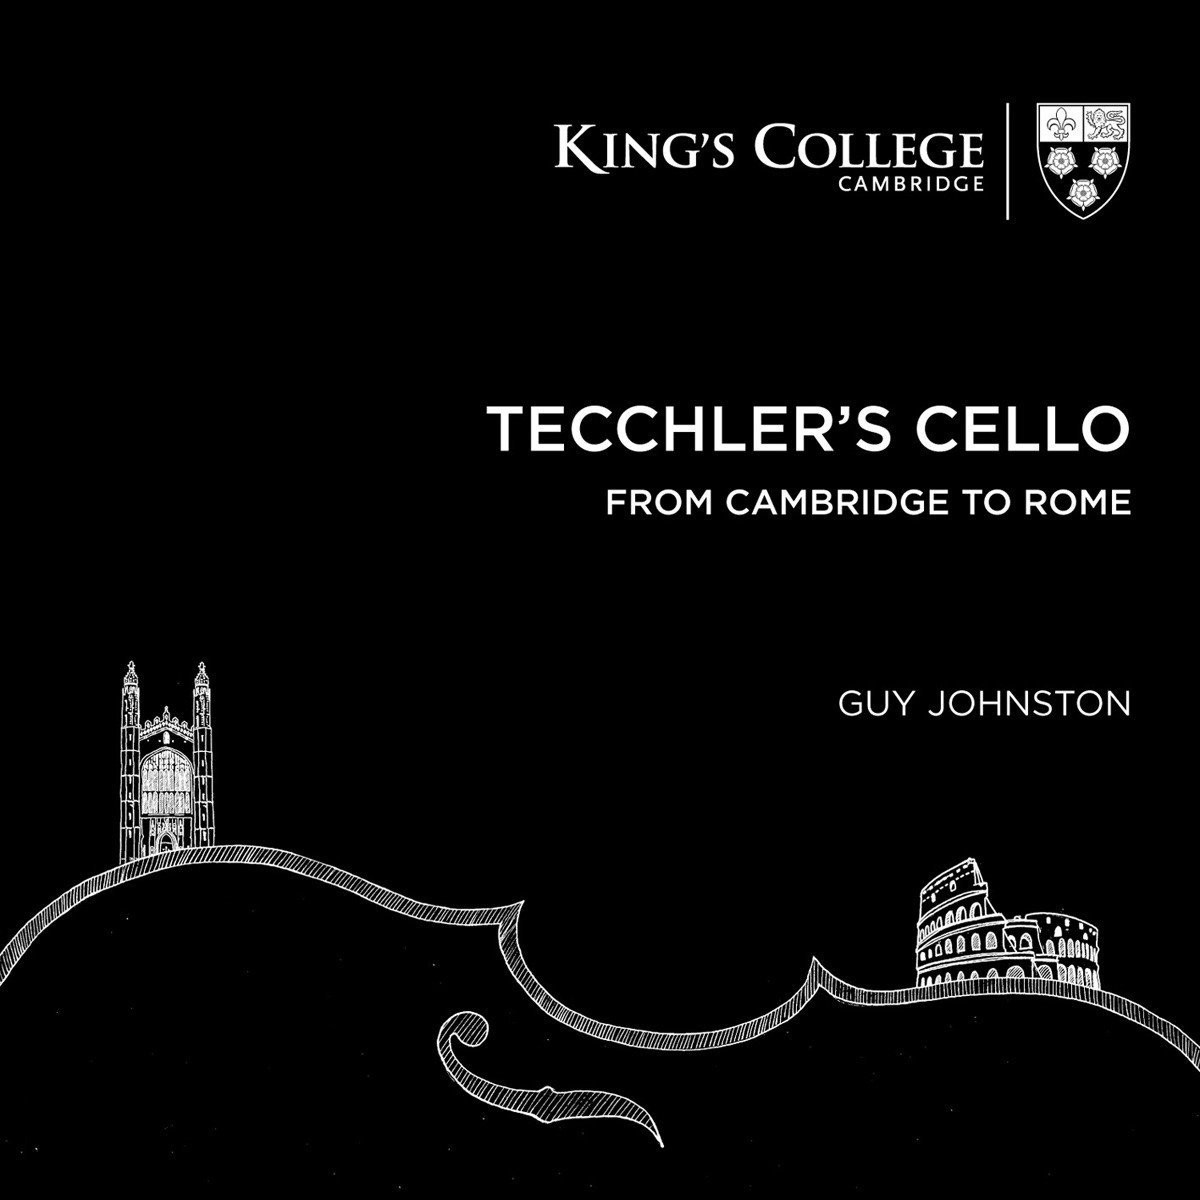 Tecchler's Cello